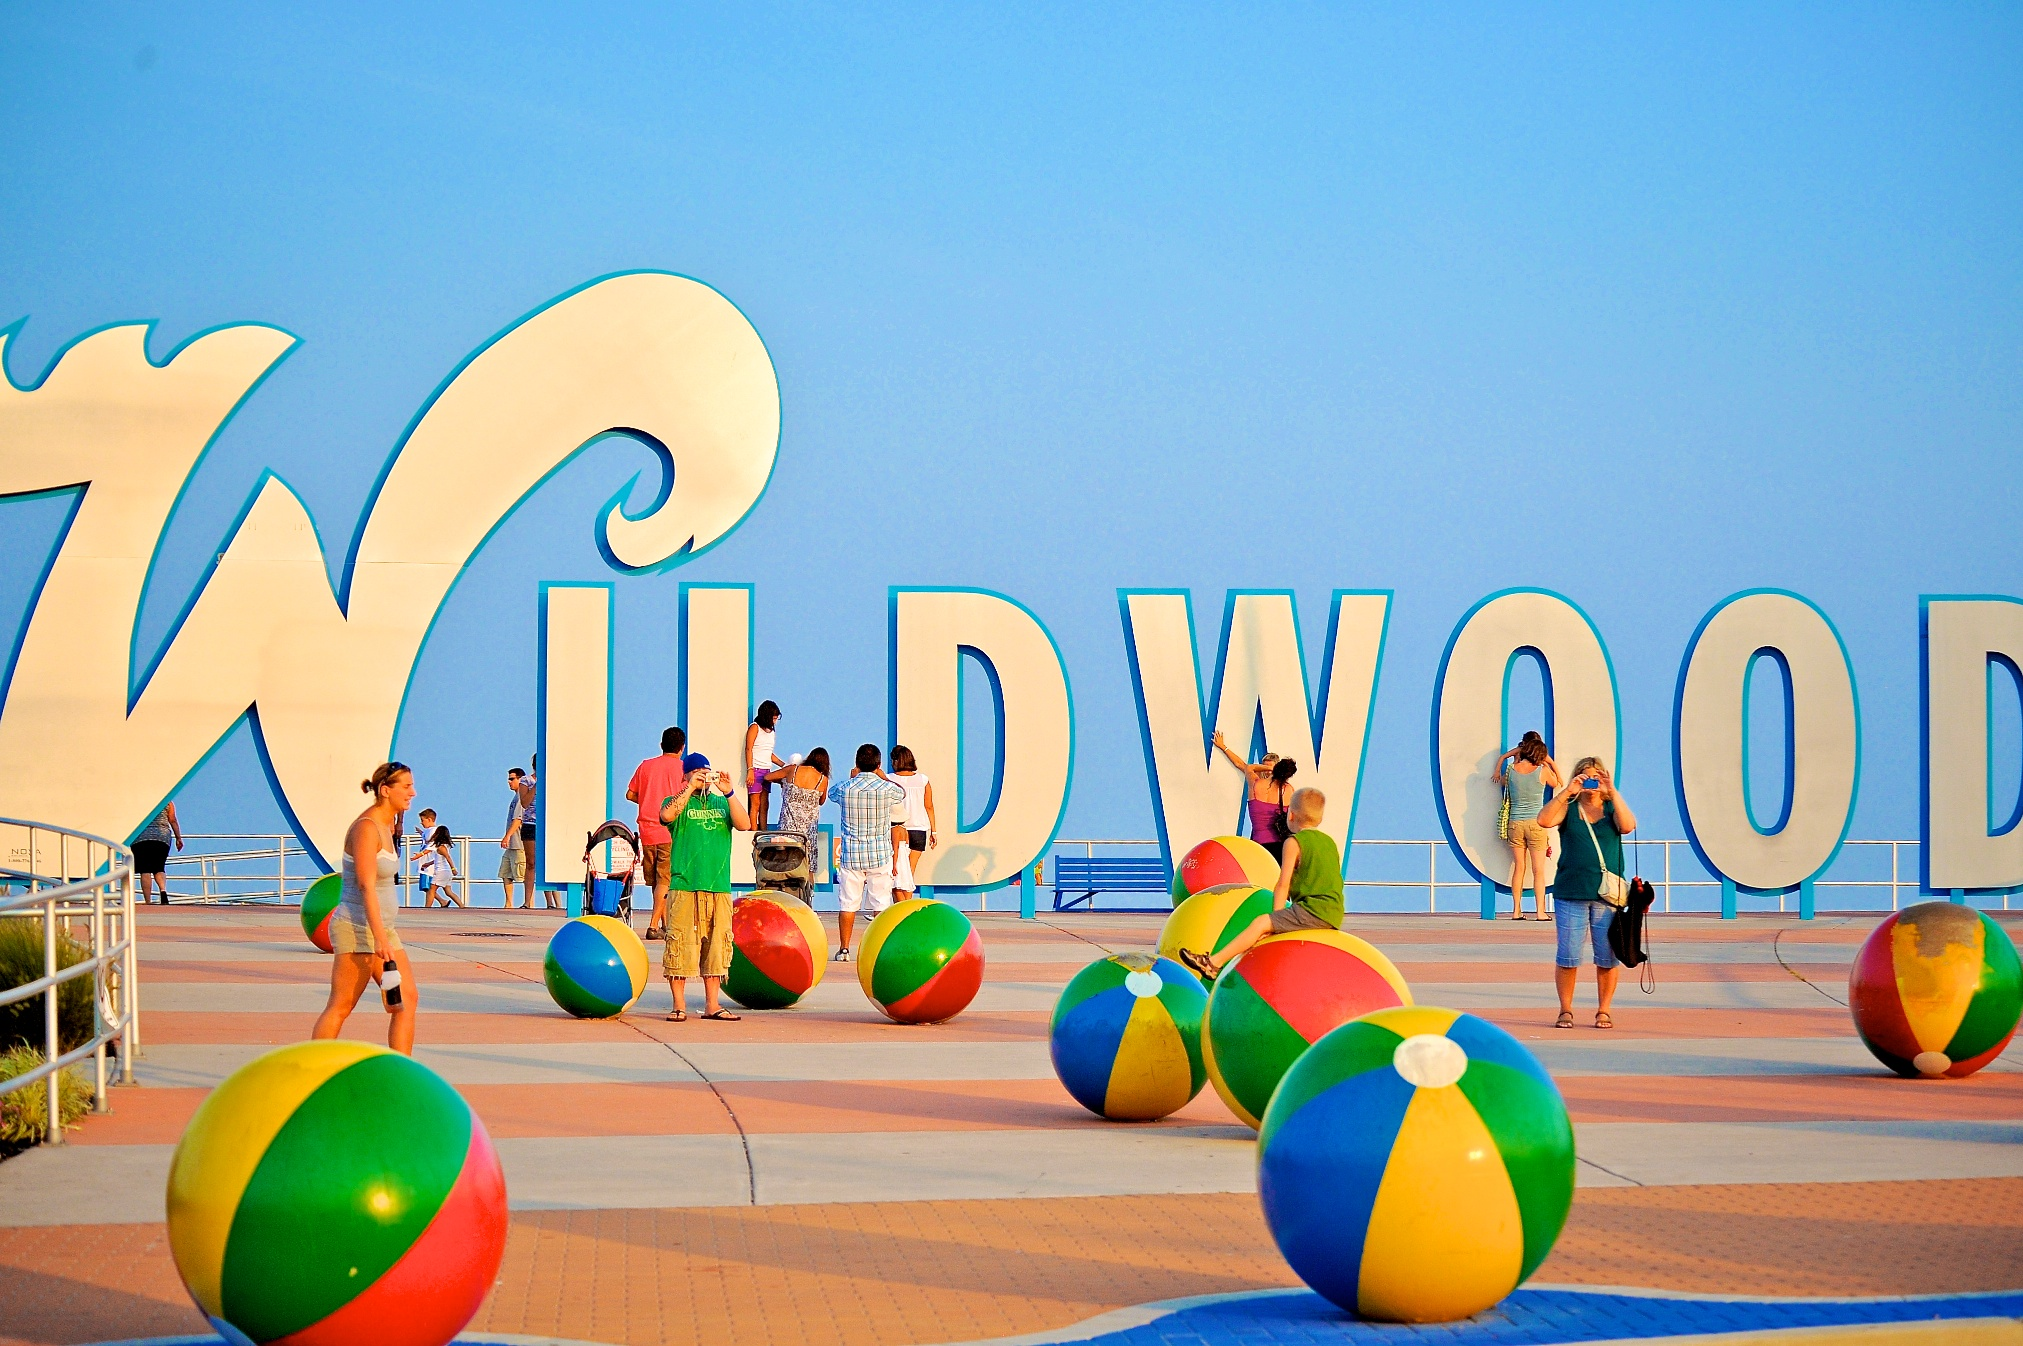 wildwood sign